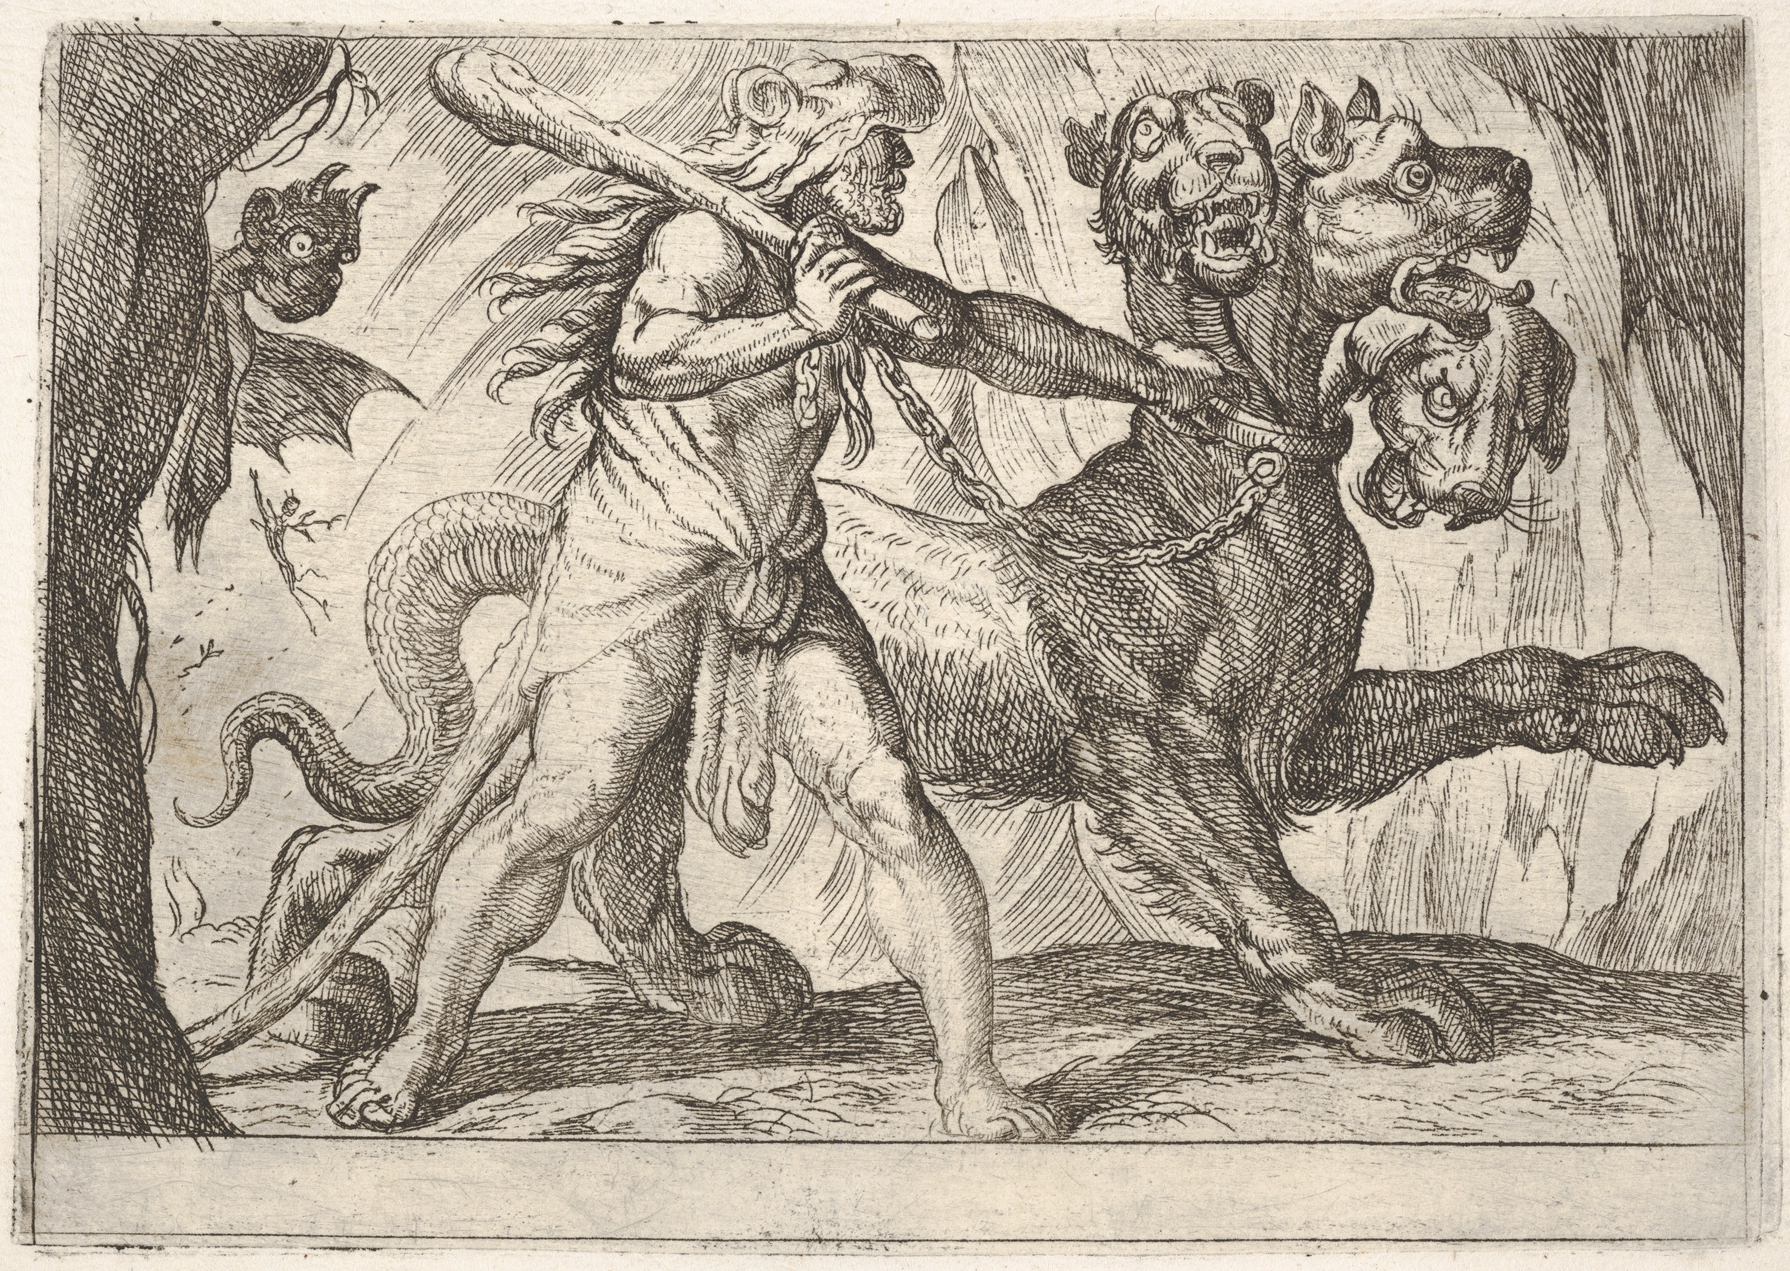 antonio tempesta hercules and the nemean lion hercules grasps hercules and cerberus hercules grasps the collar of cerberus two demons appear at left from the series the labors of hercules